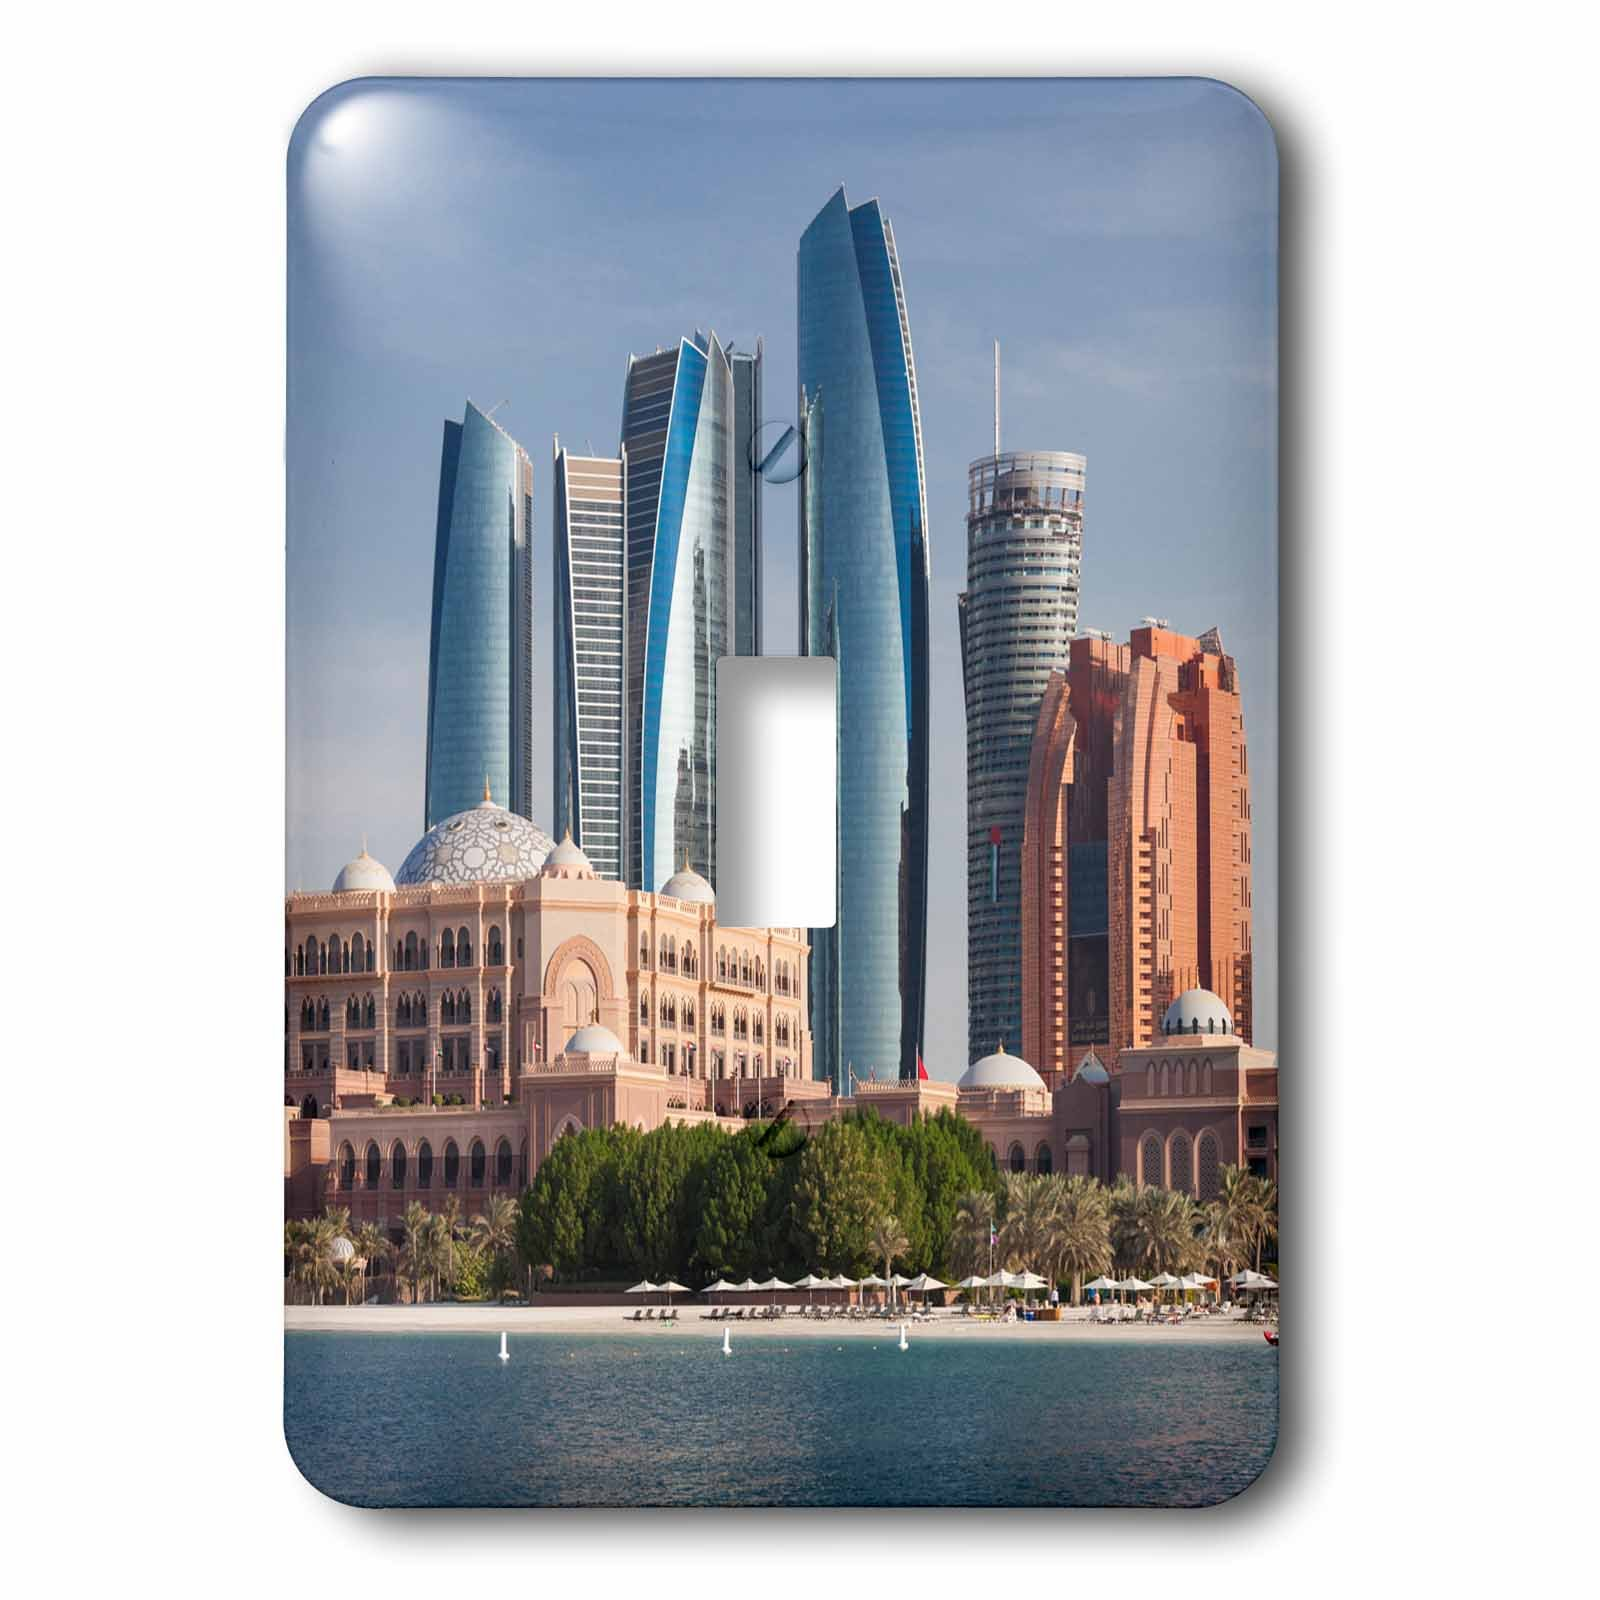 3dRose Danita Delimont - Cities - UAE, Abu Dhabi. Etihad Towers and Emirates Palace Hotel - Light Switch Covers - single toggle switch (lsp_277131_1)